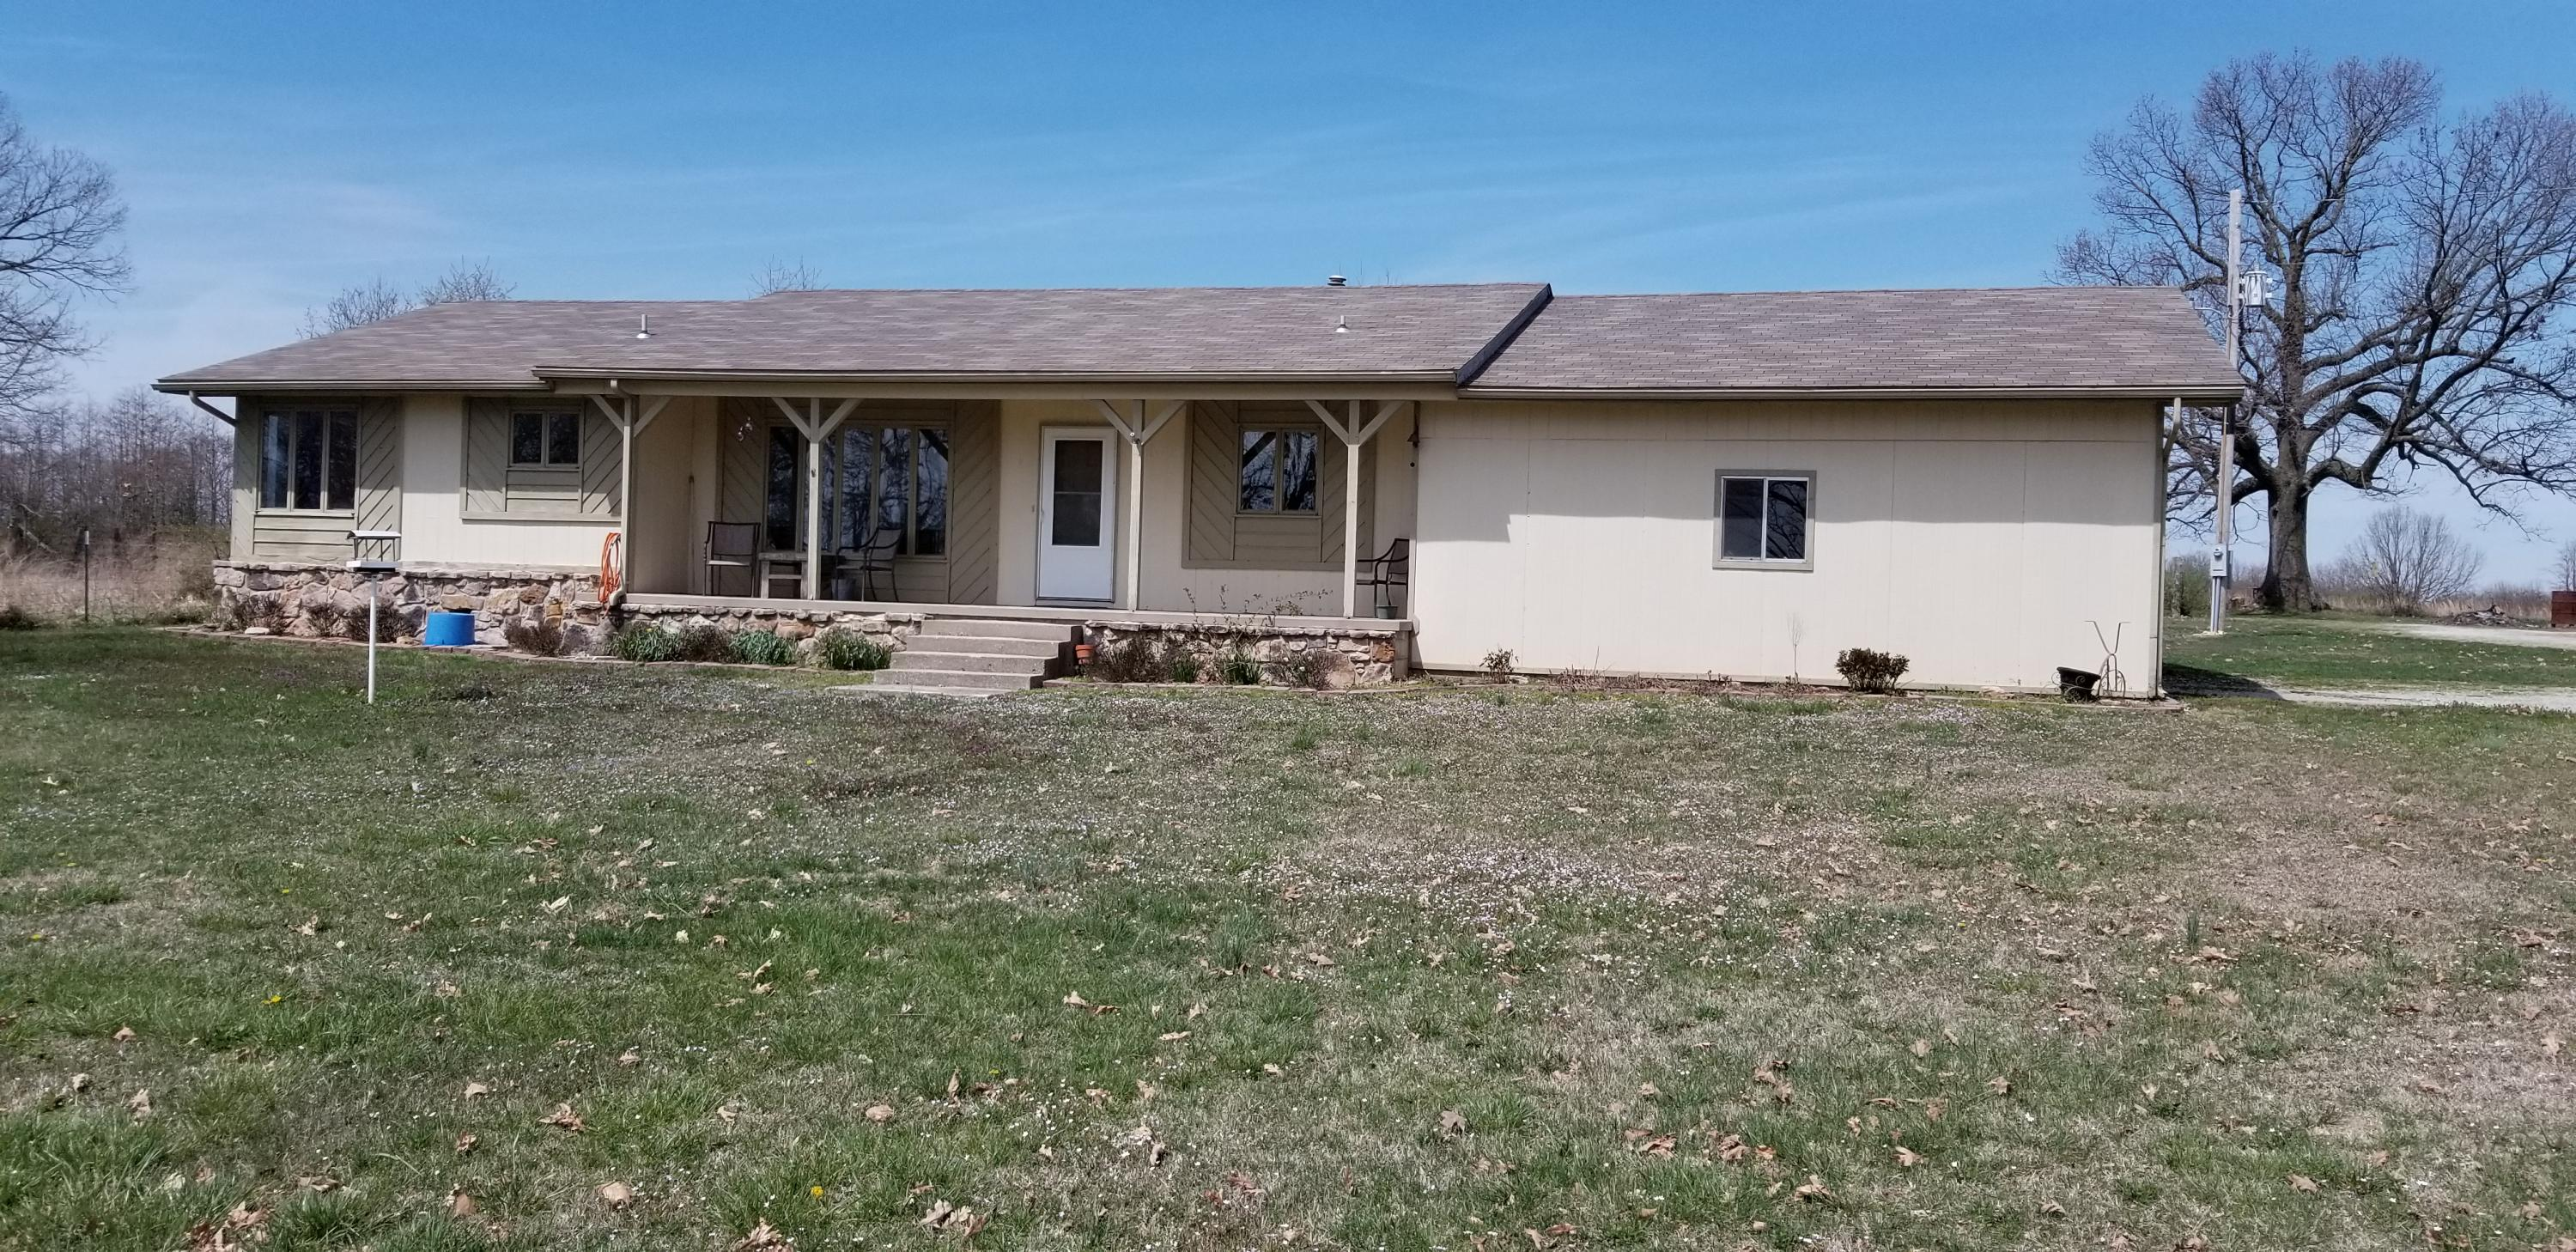 17114 State Hwy Cassville, MO 65625